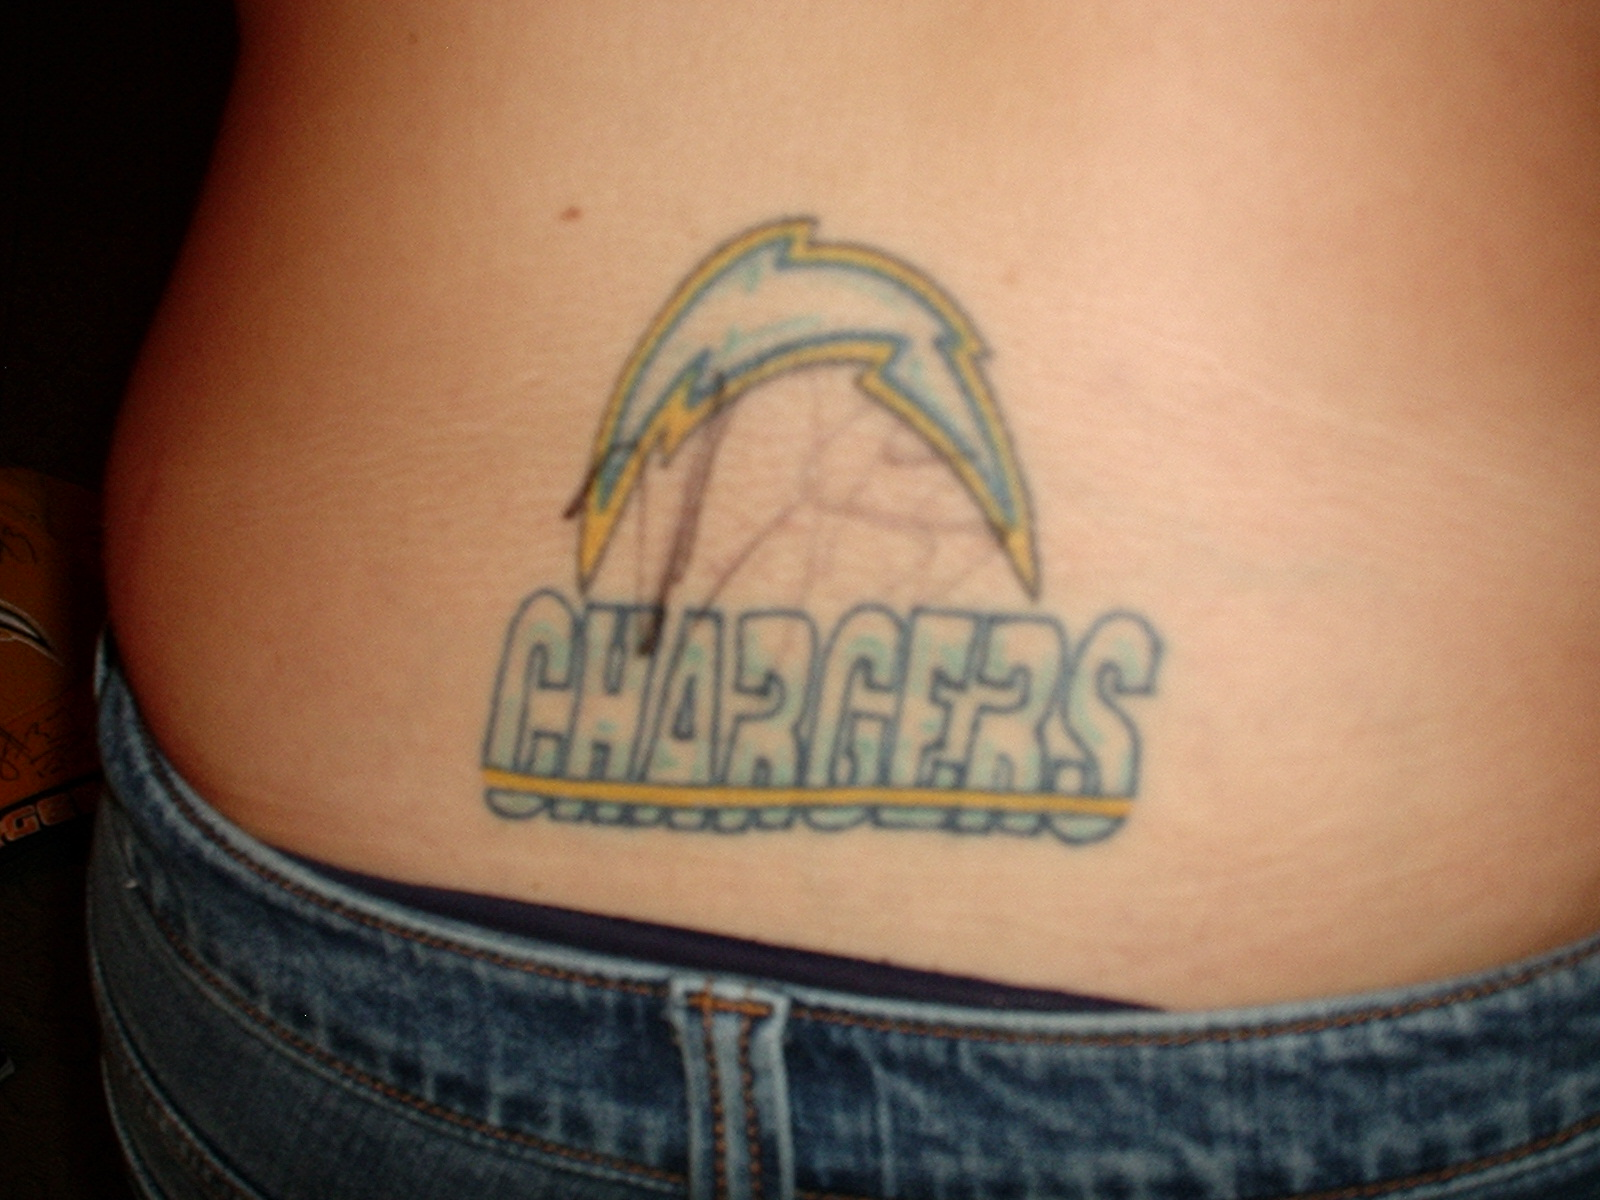 San diego chargers quotes quotesgram for Tattoo expo san diego